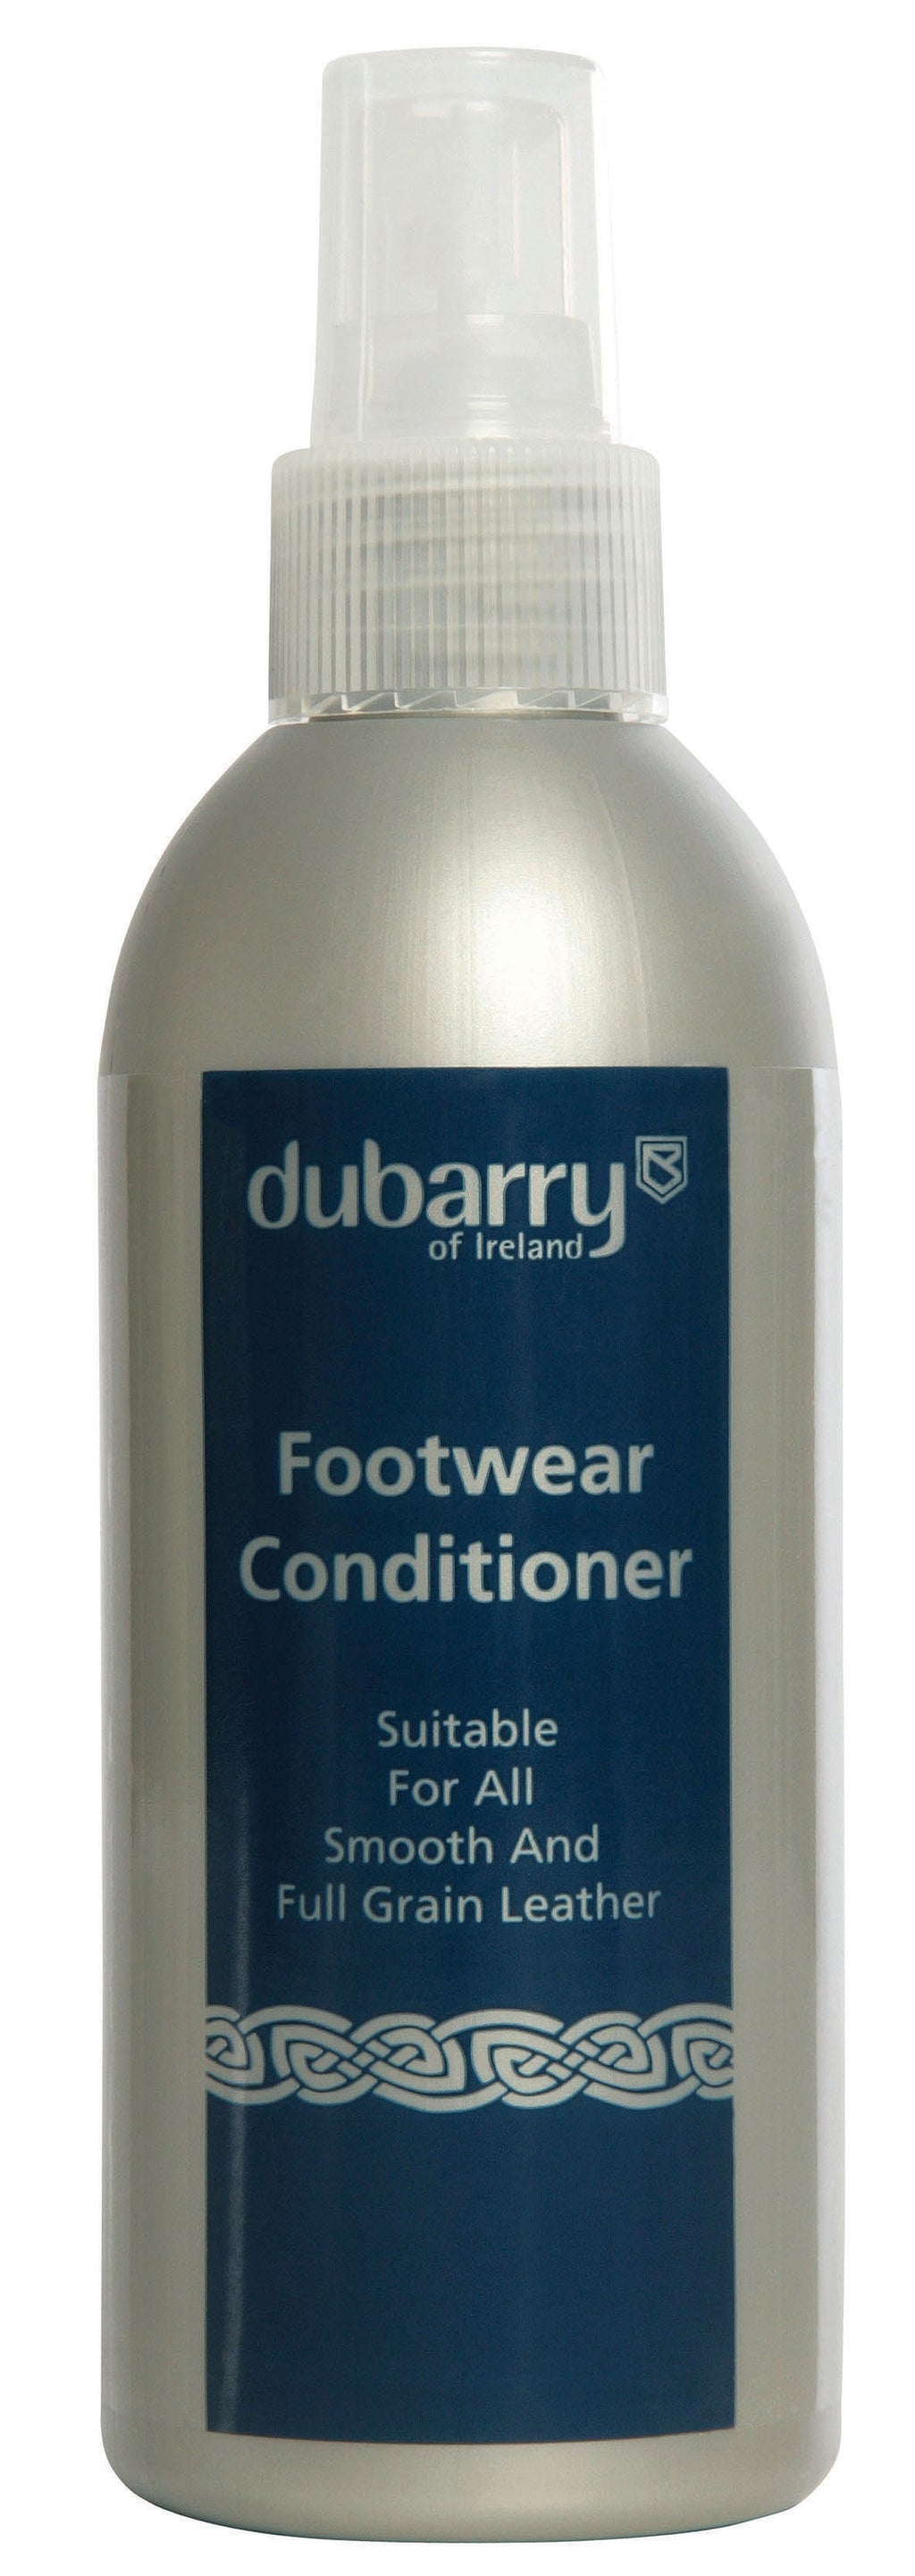 Dubarry Leather Conditioner